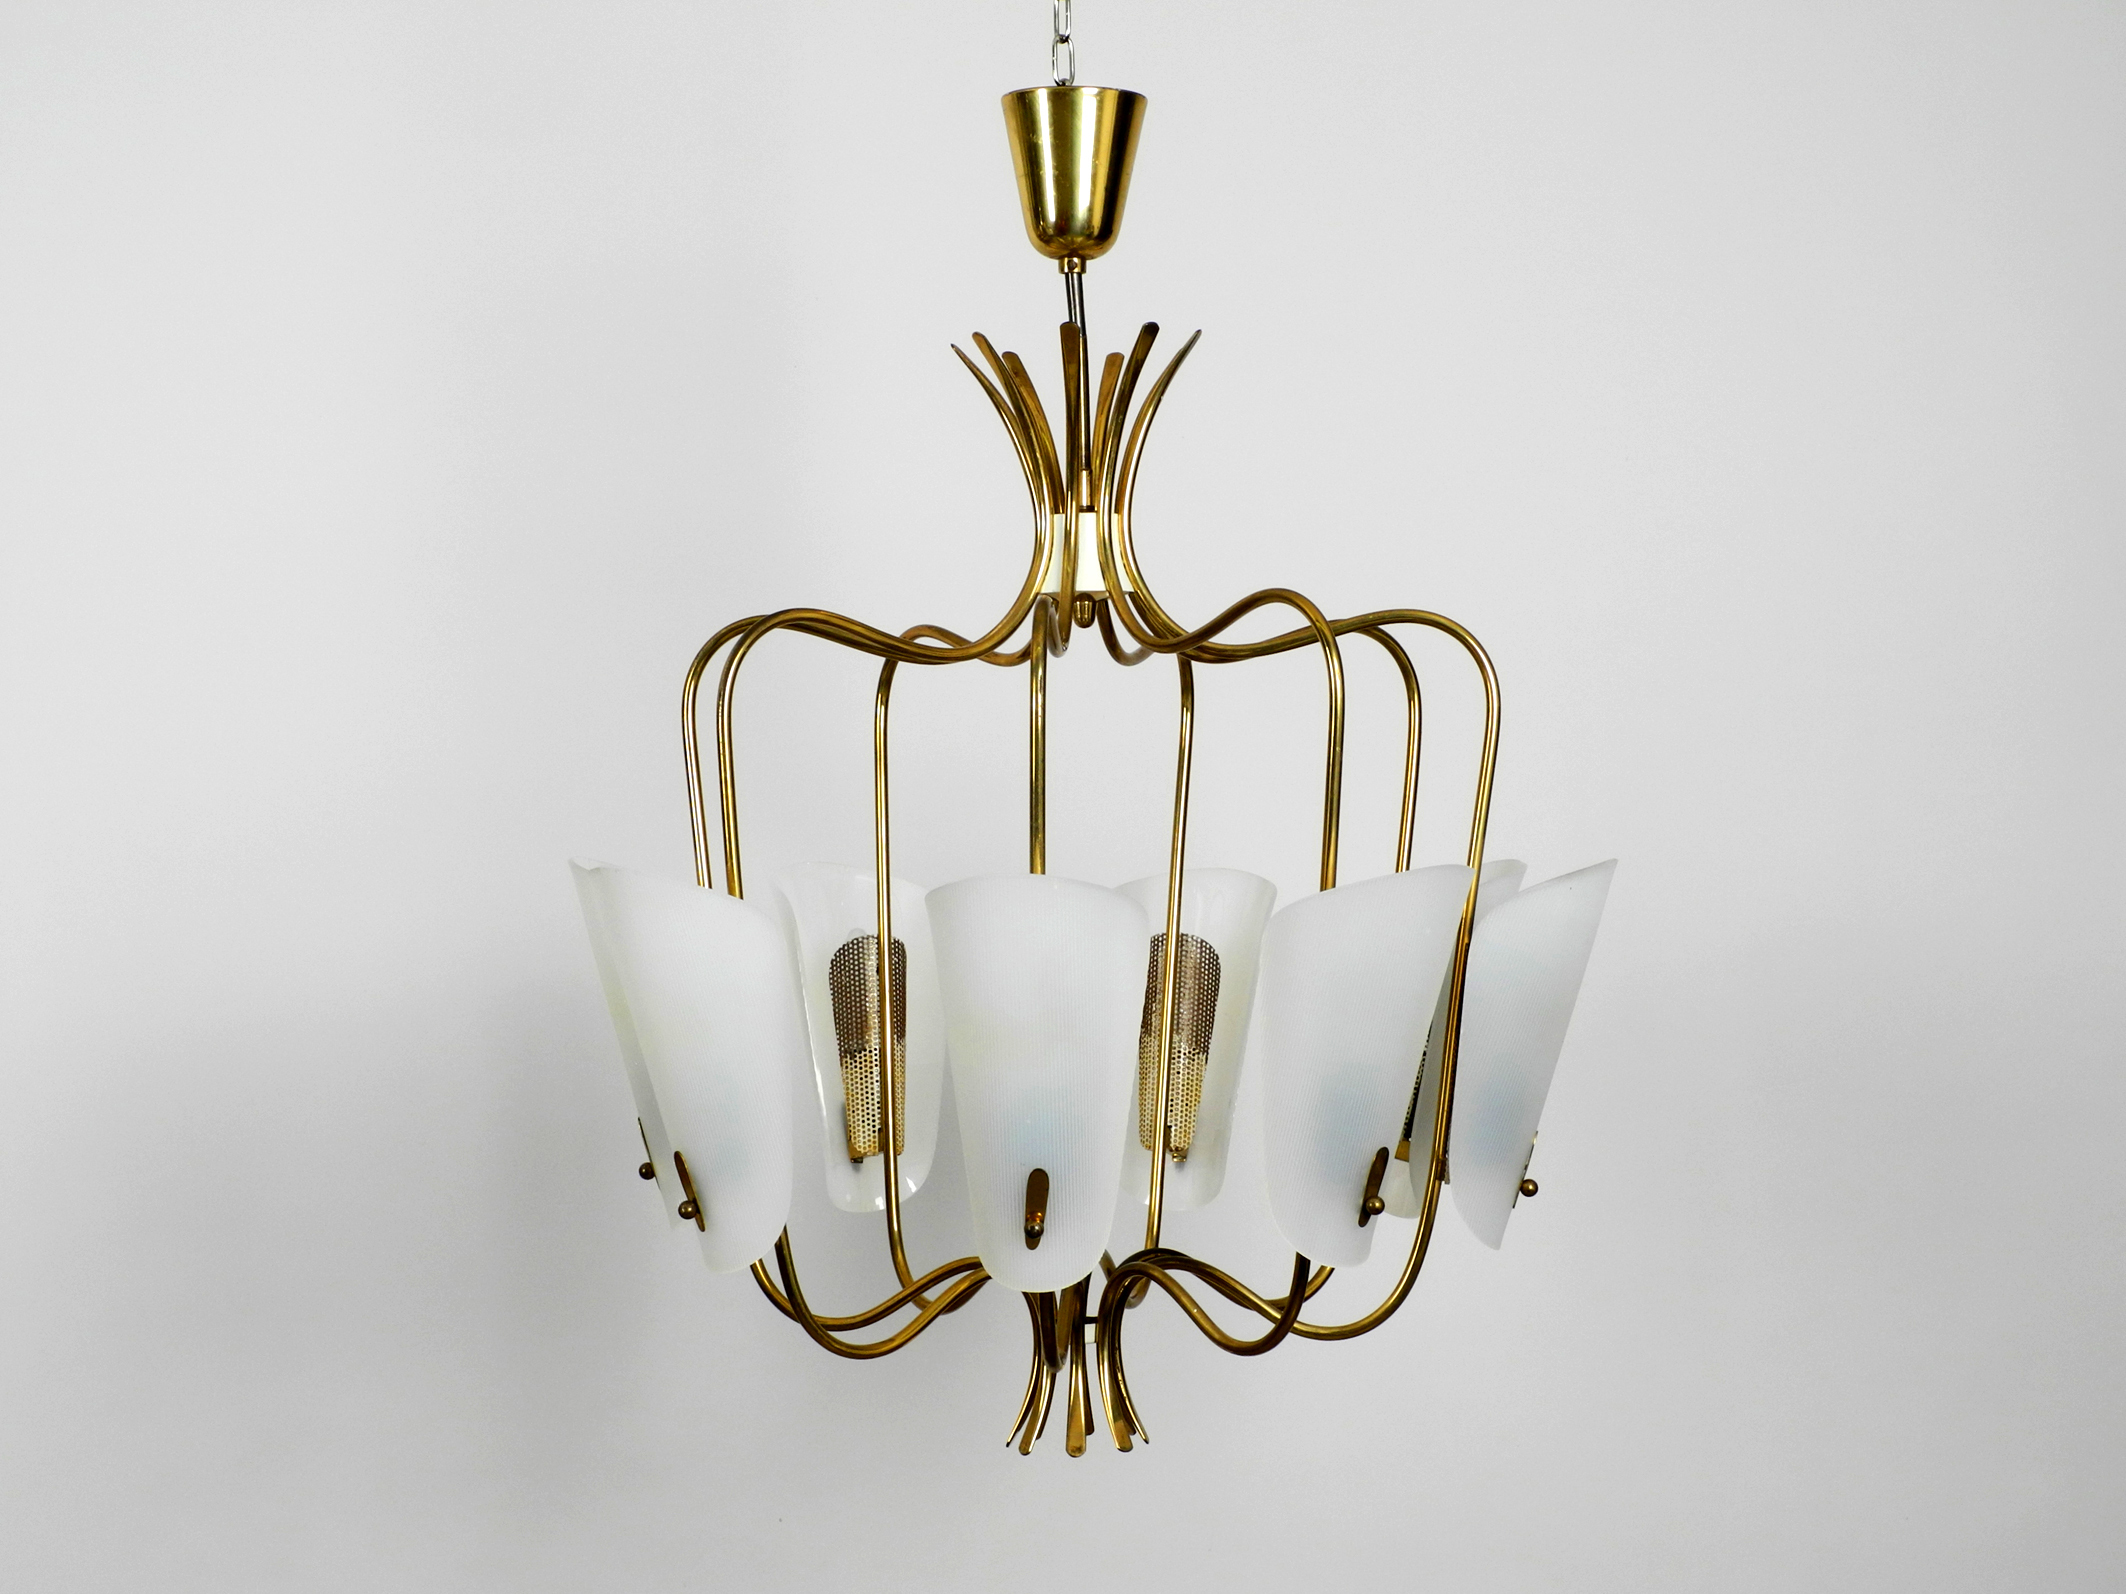 Gorgeous Large 8 Arm Mid Century Modern Brass Chandelier With Large Plexiglass Shades Vinterior